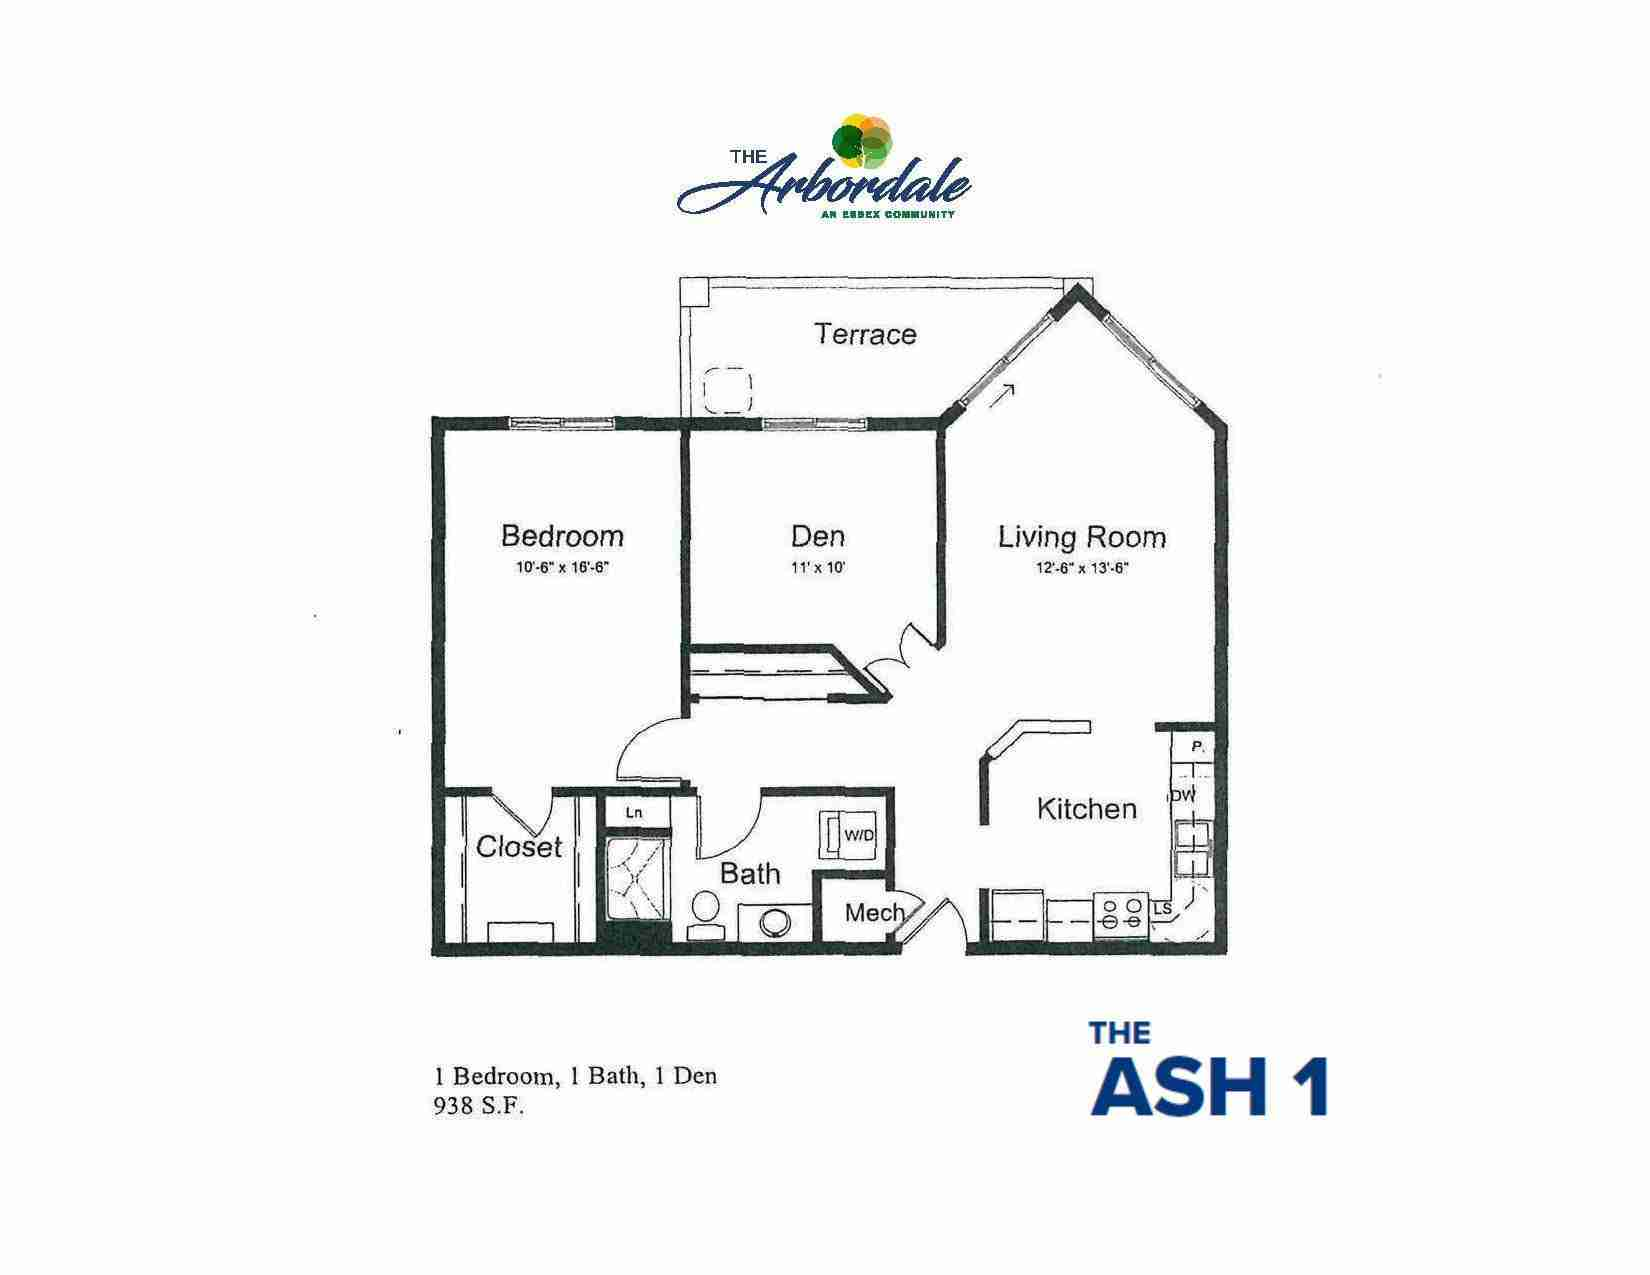 the ash 1 floor plan, 1 bedroom, 1 bath, 1 den, 938 sq ft